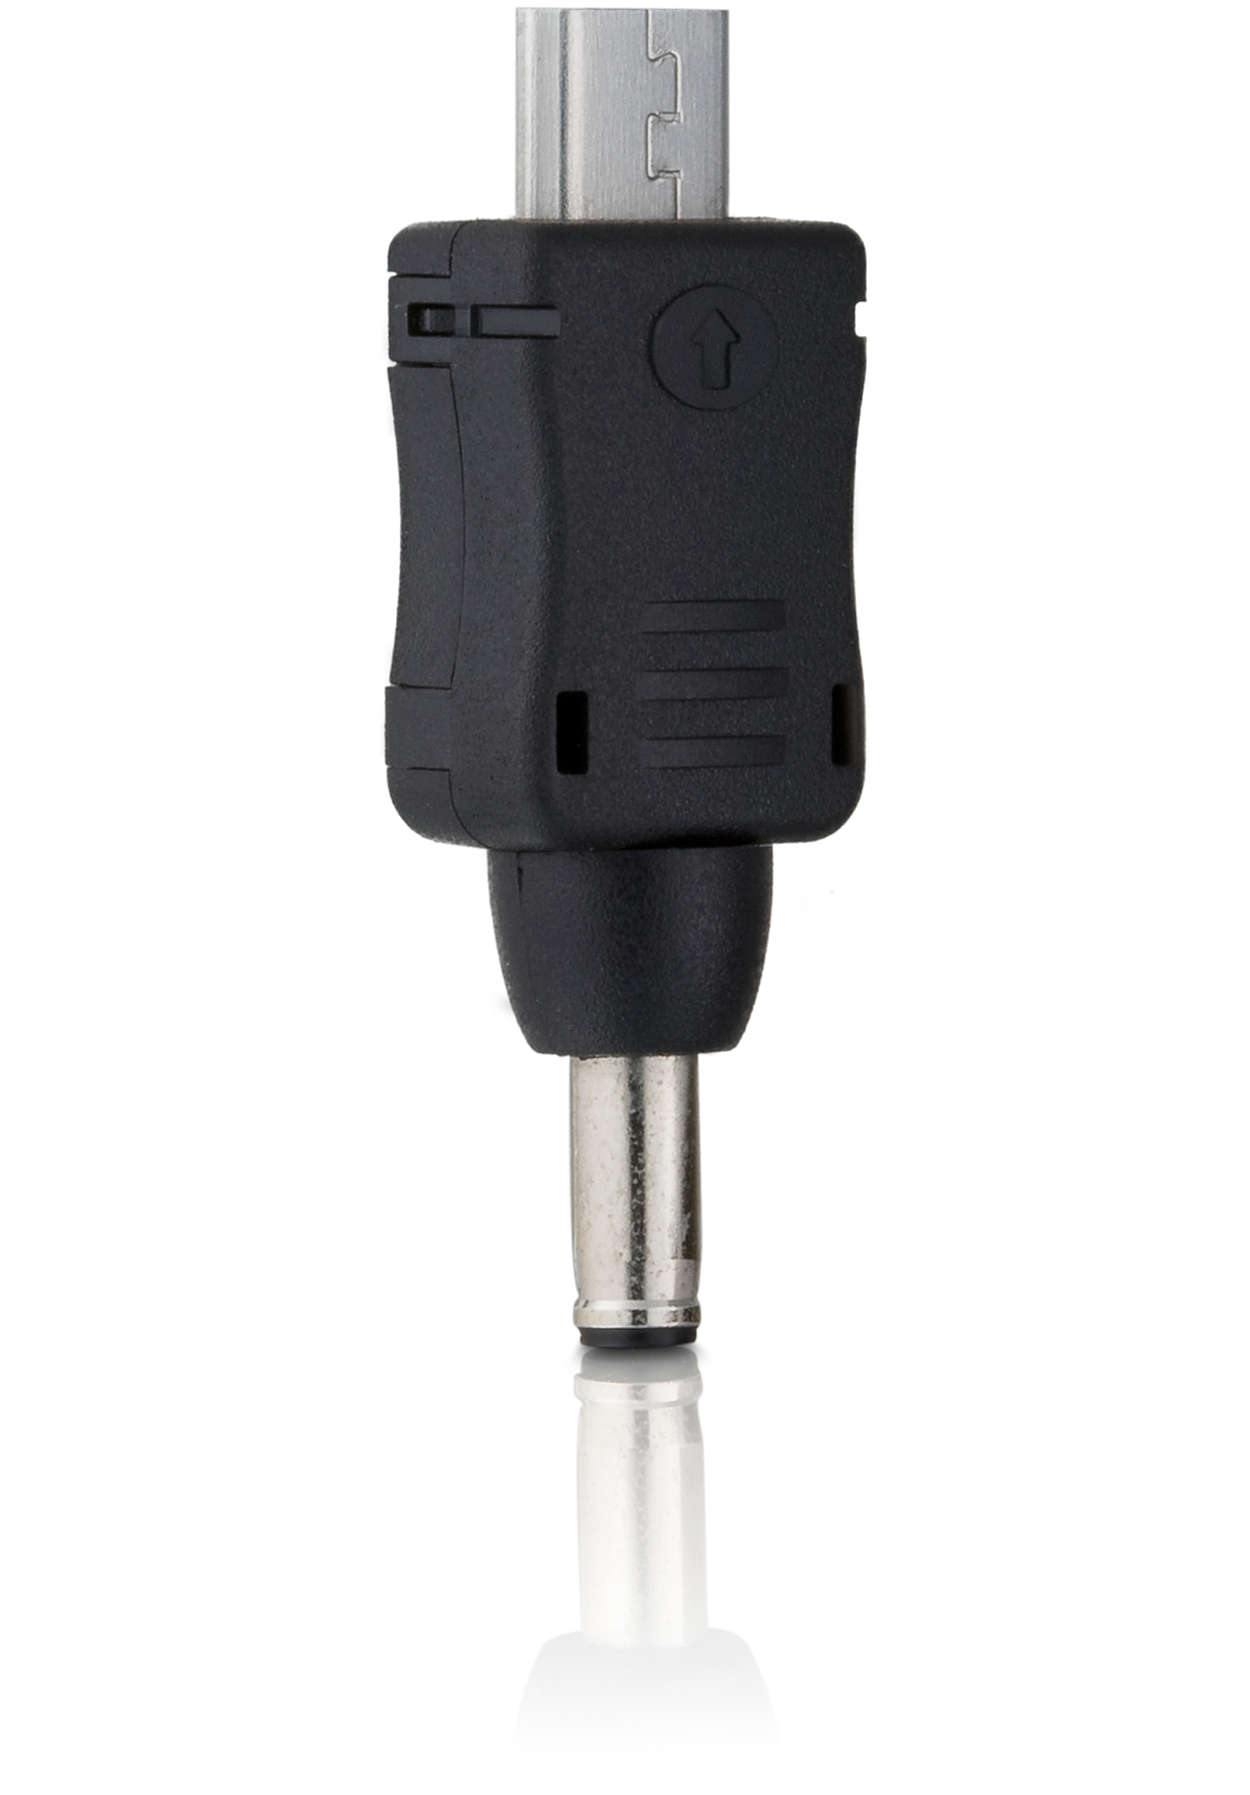 Connector tip for phones with micro USB connection